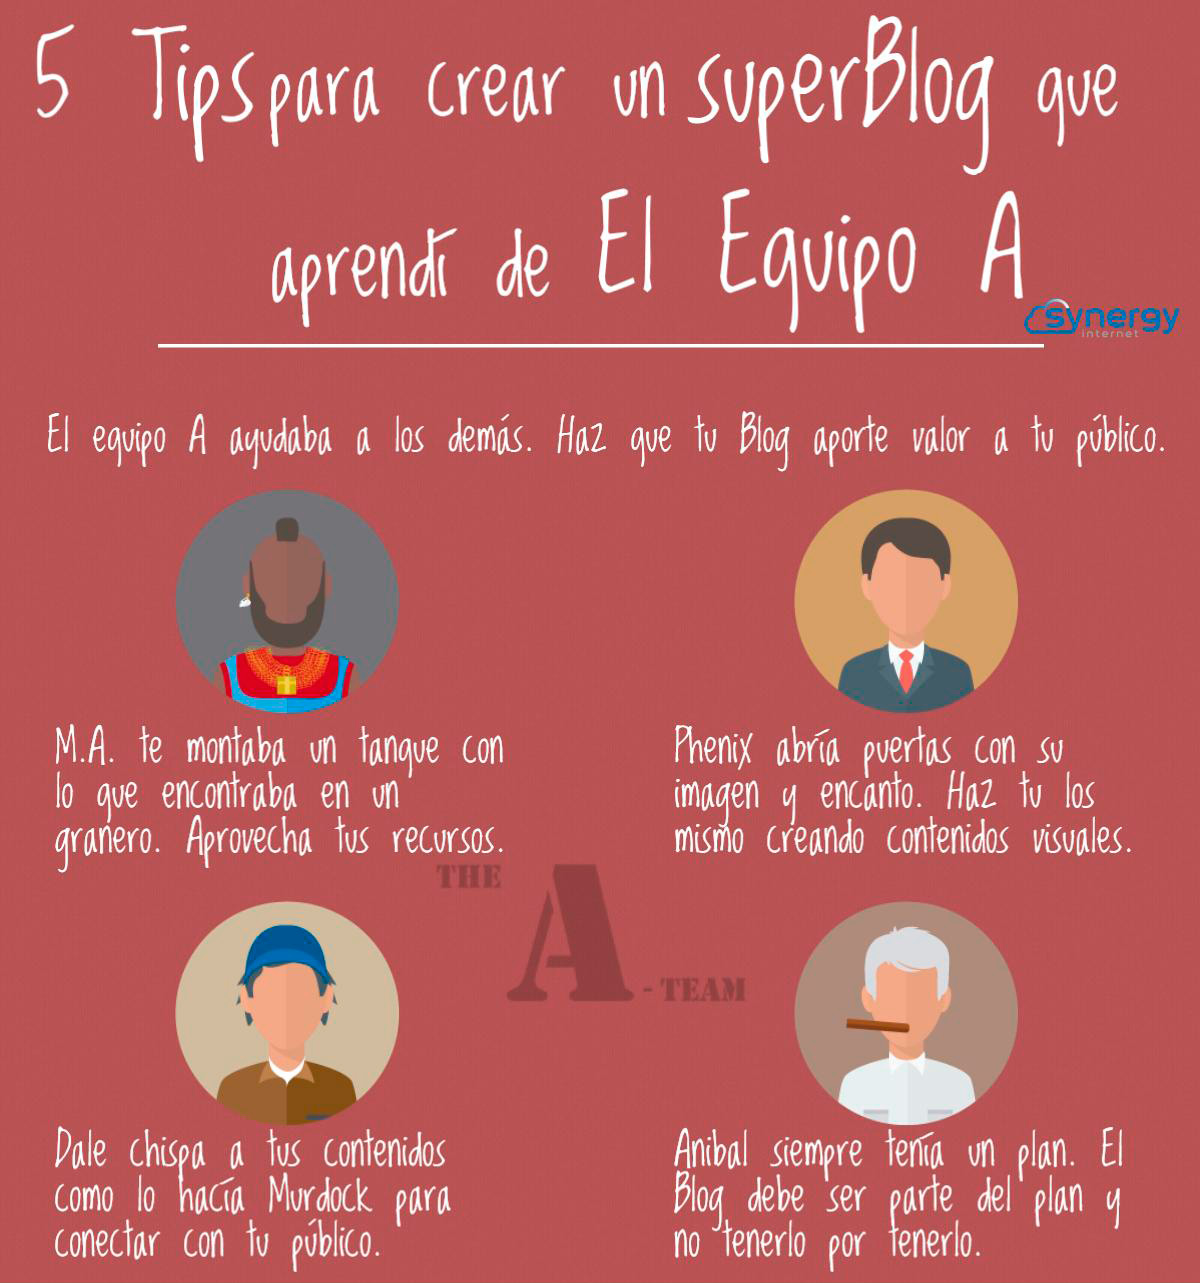 infografia-5tips-superblog-eqipoa